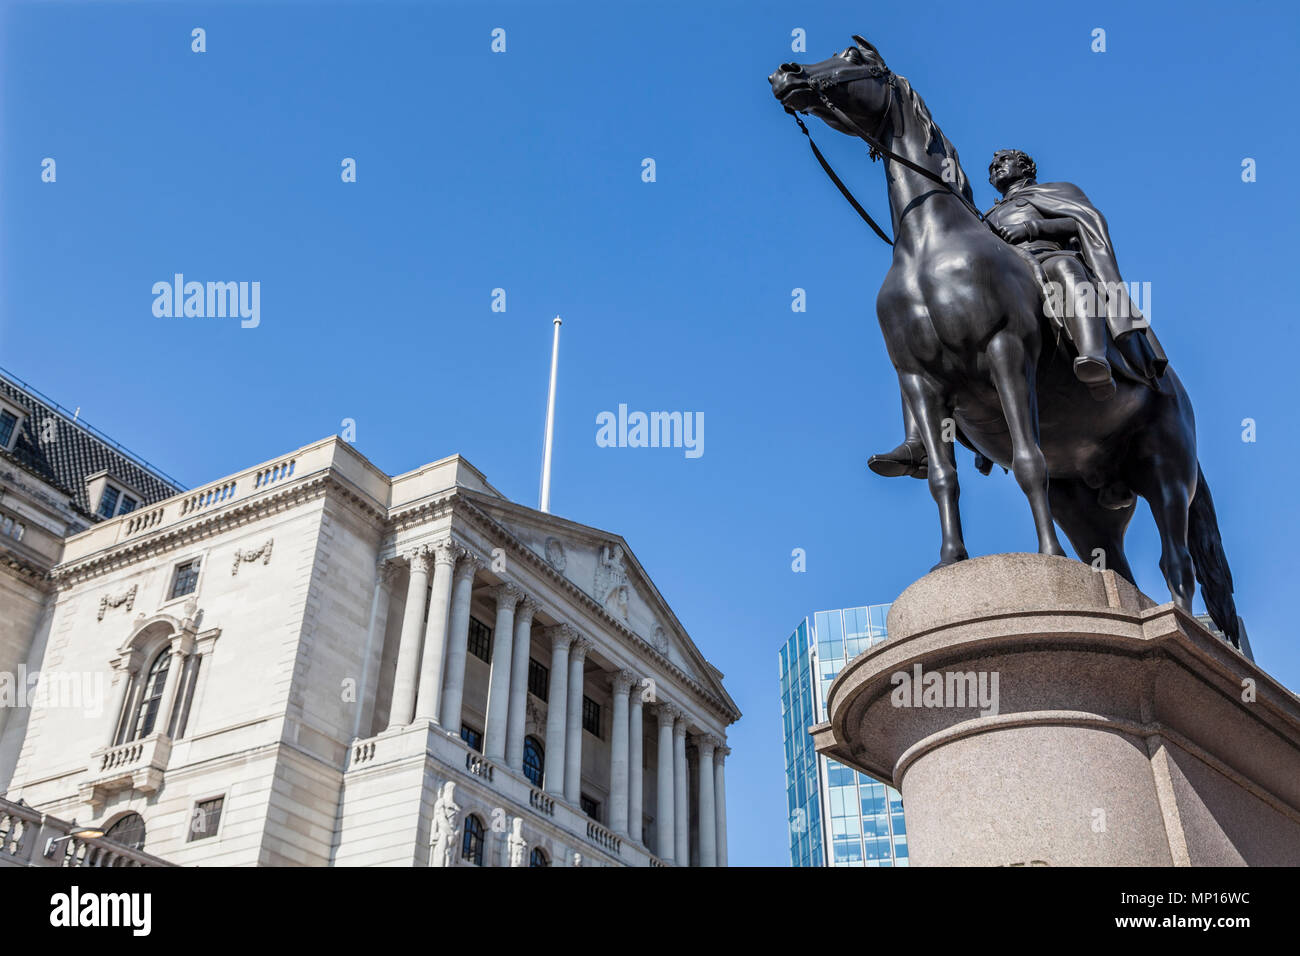 Bank of England on Threadneedle Street in the heart of London's financial district, with Duke of Wellington statue in the foreground - Stock Image